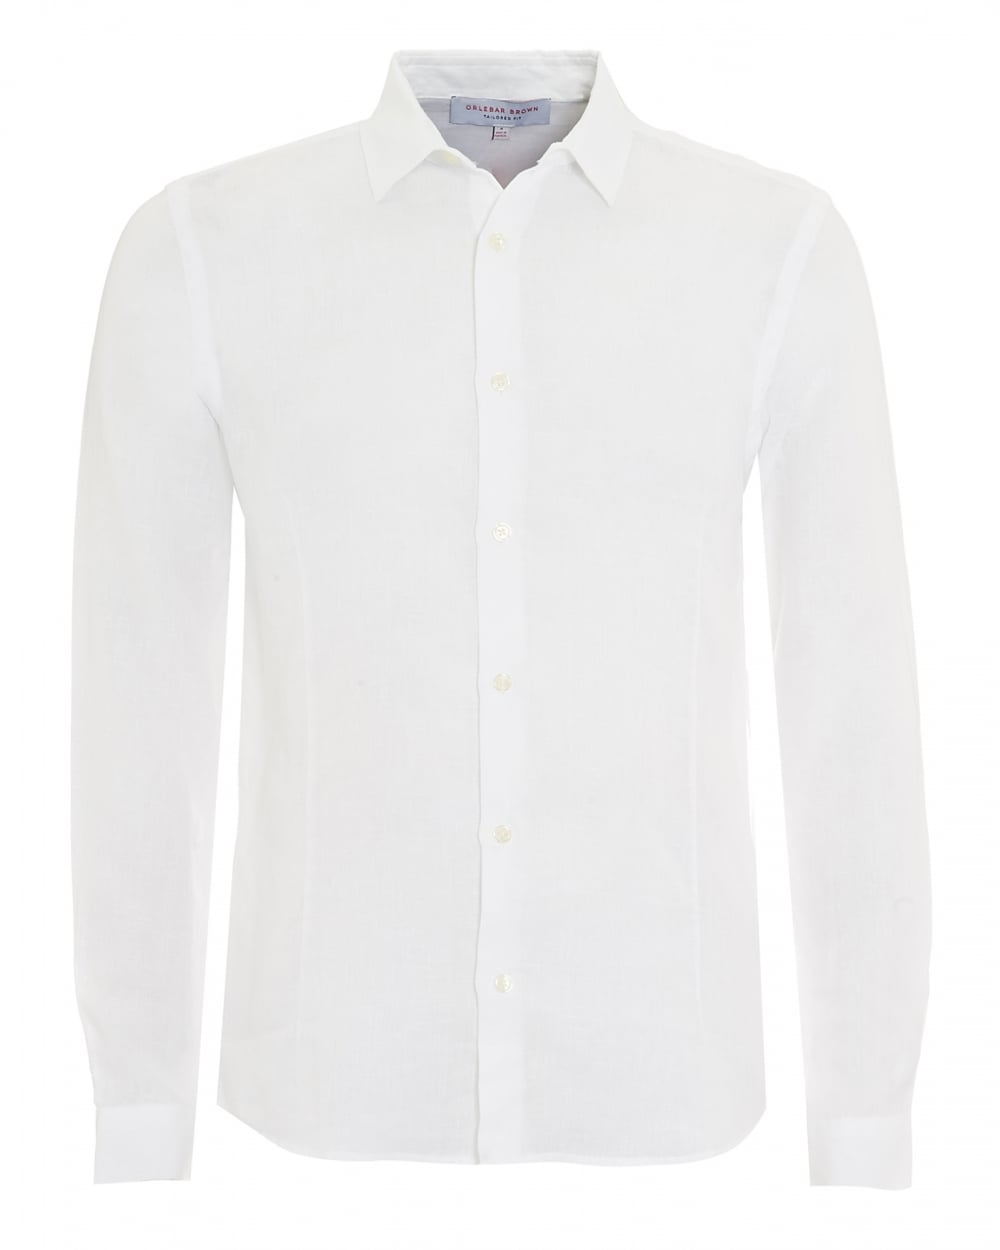 480df65713d0 Orlebar Brown Mens Morton Tailored Long Sleeve White Linen Shirt